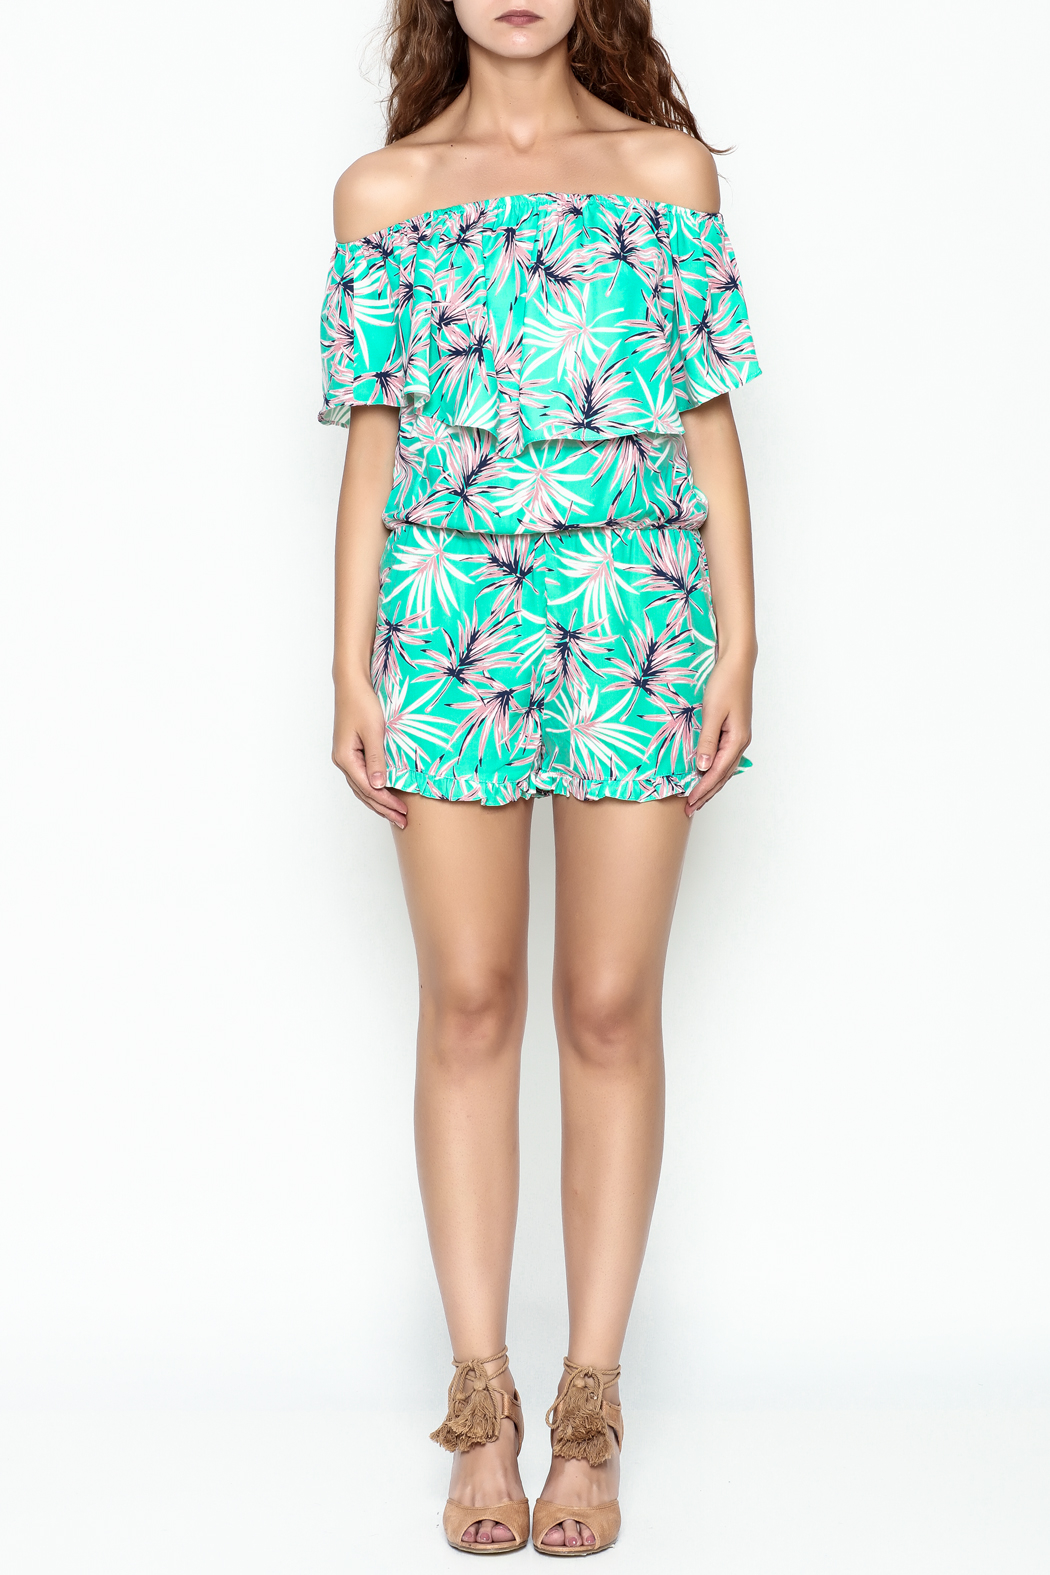 Buddy Love Tropical Mojito Romper - Front Full Image